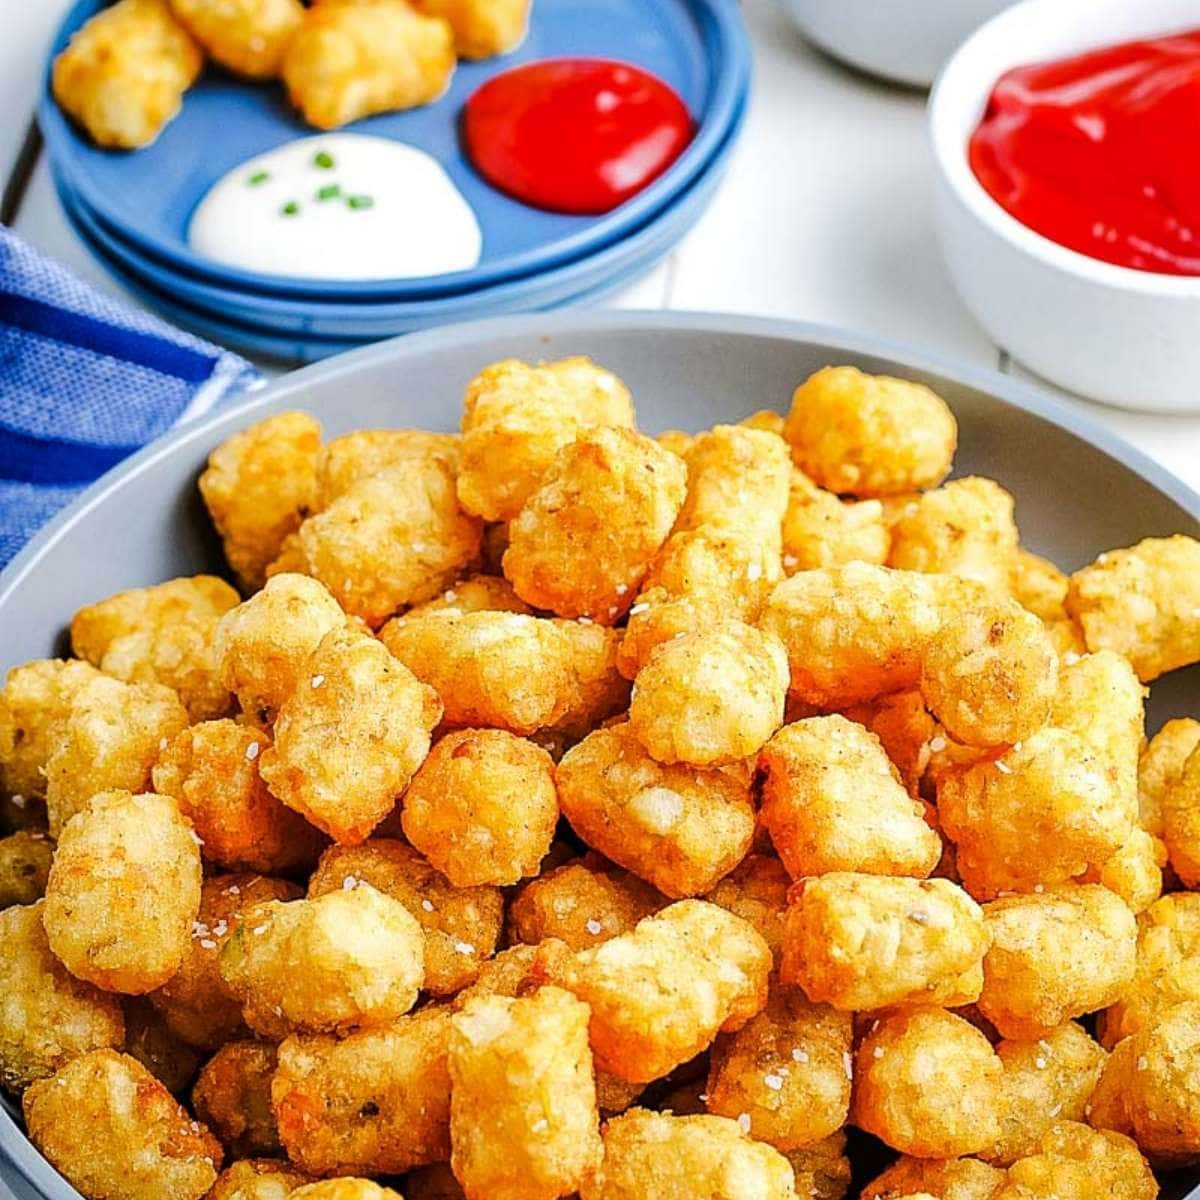 tater tots on plate after cooking in the air fryer next to ramekin of ketchup